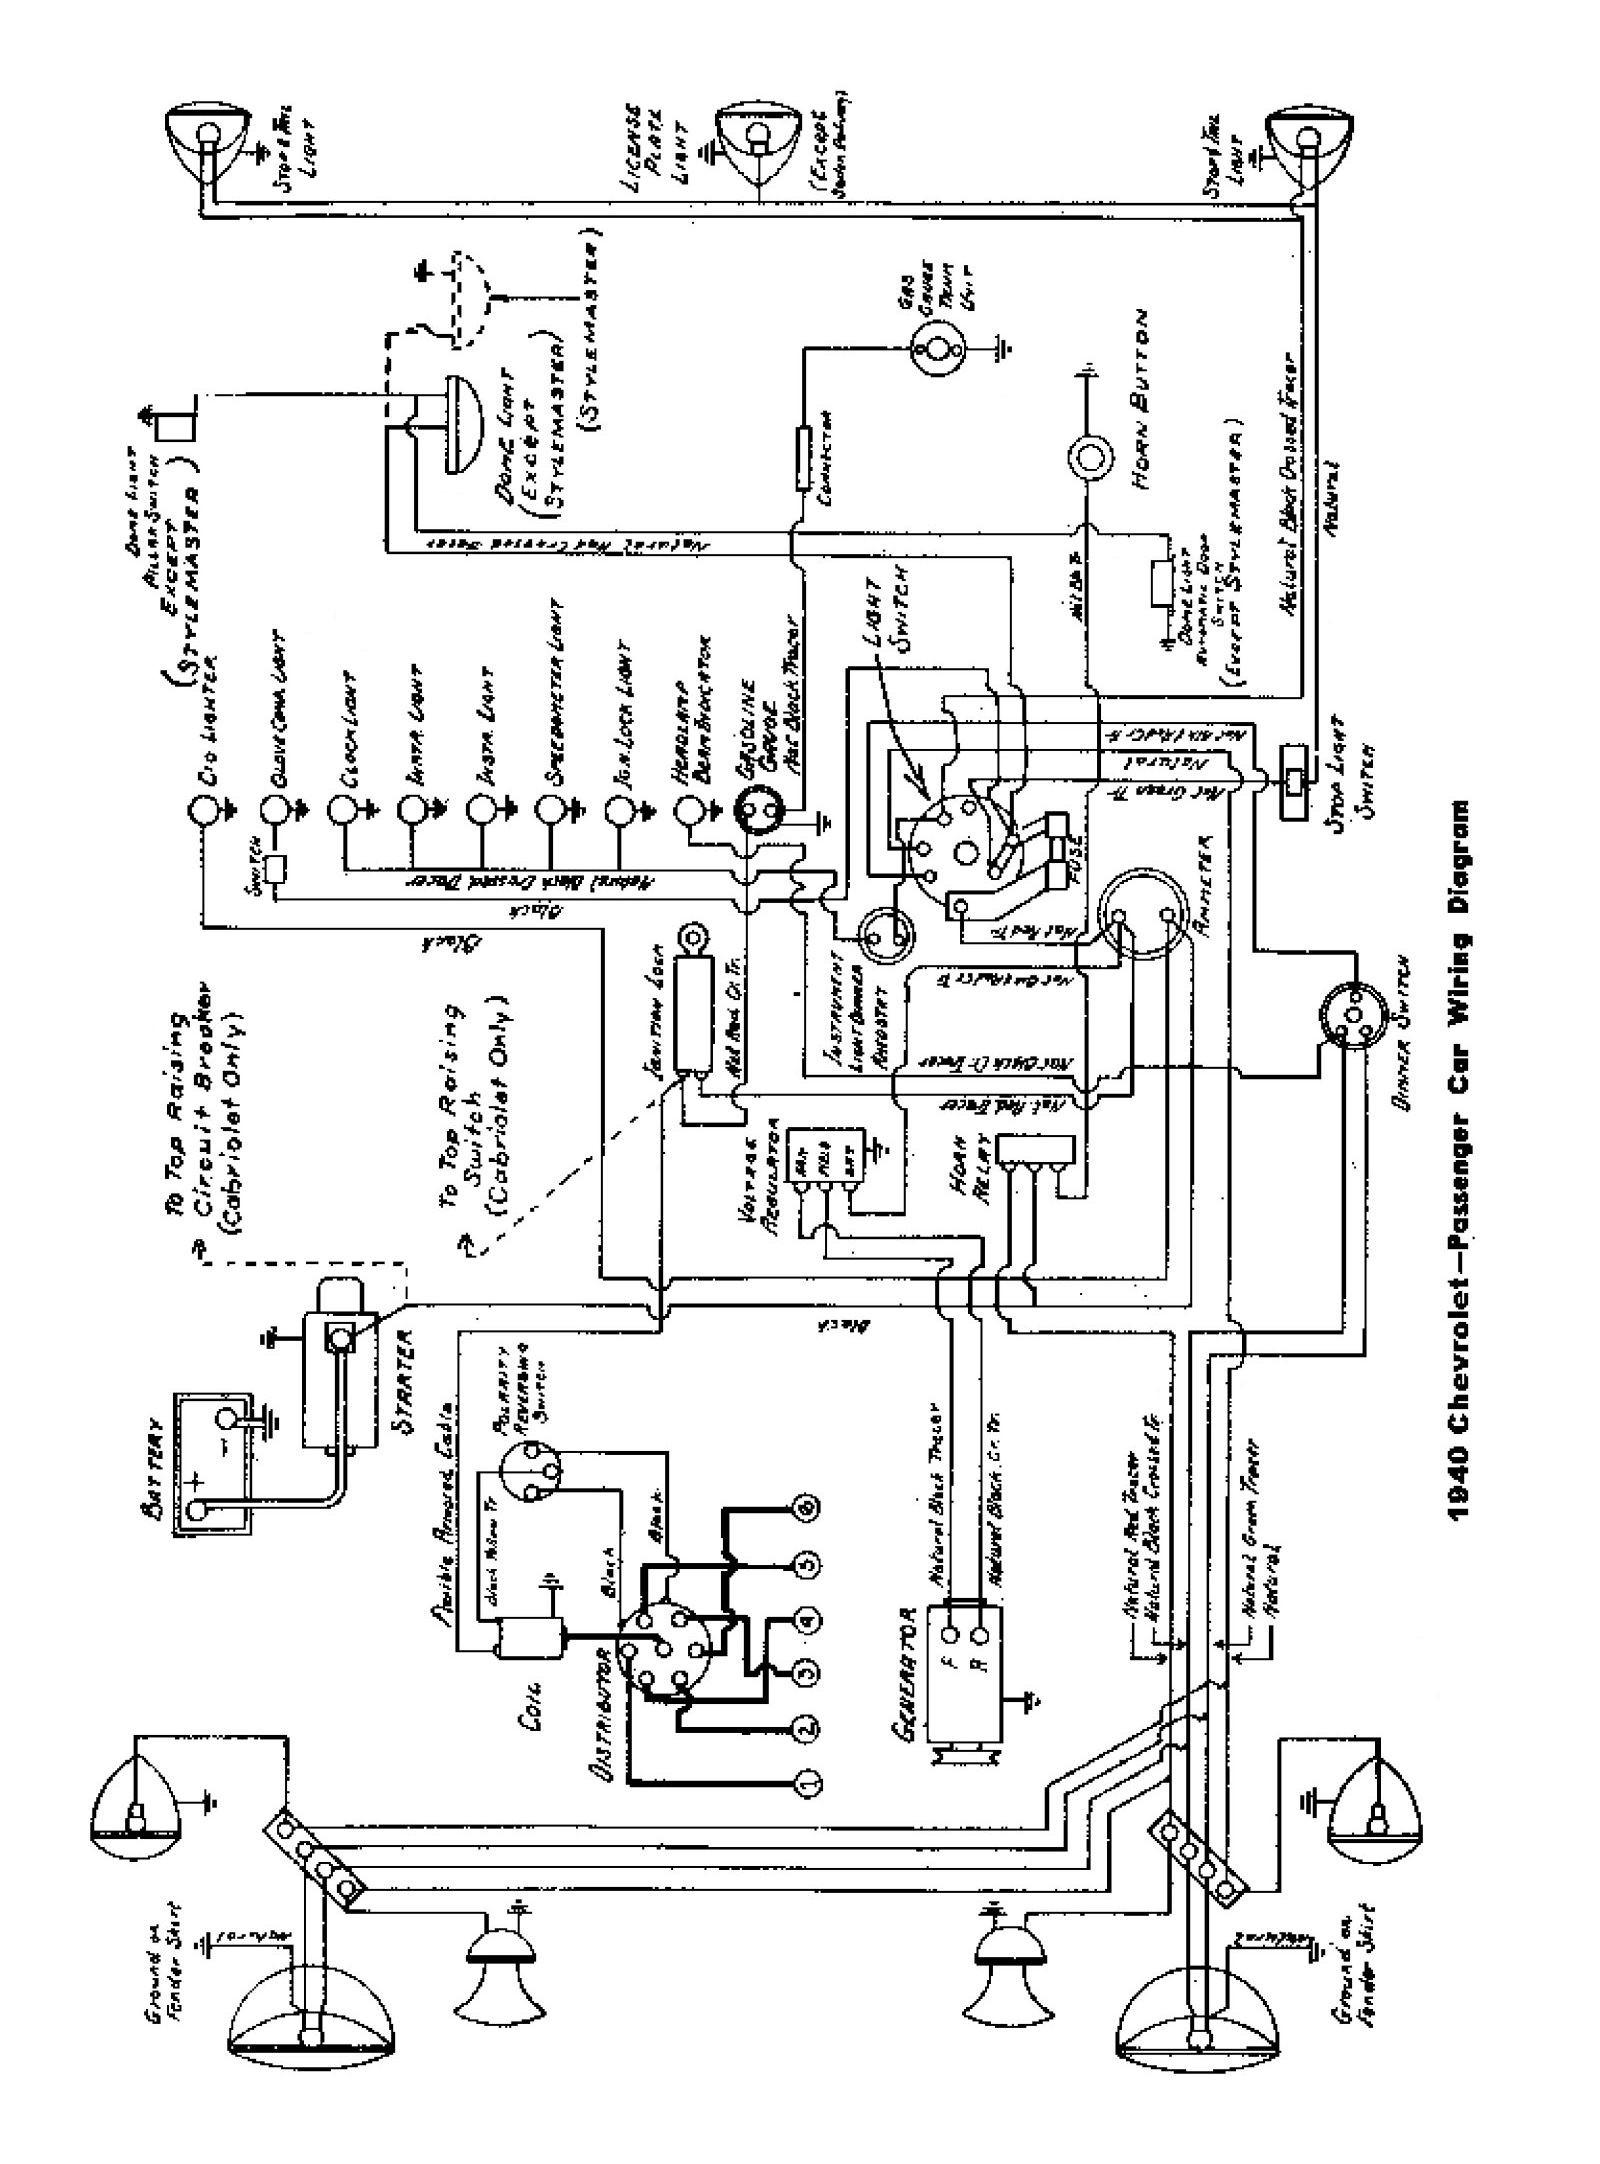 1994 Chevy Truck Wiring Diagram Free Wiring Diagram for A 1952 Chevy Truck Free Download Wiring Diagram Of 1994 Chevy Truck Wiring Diagram Free